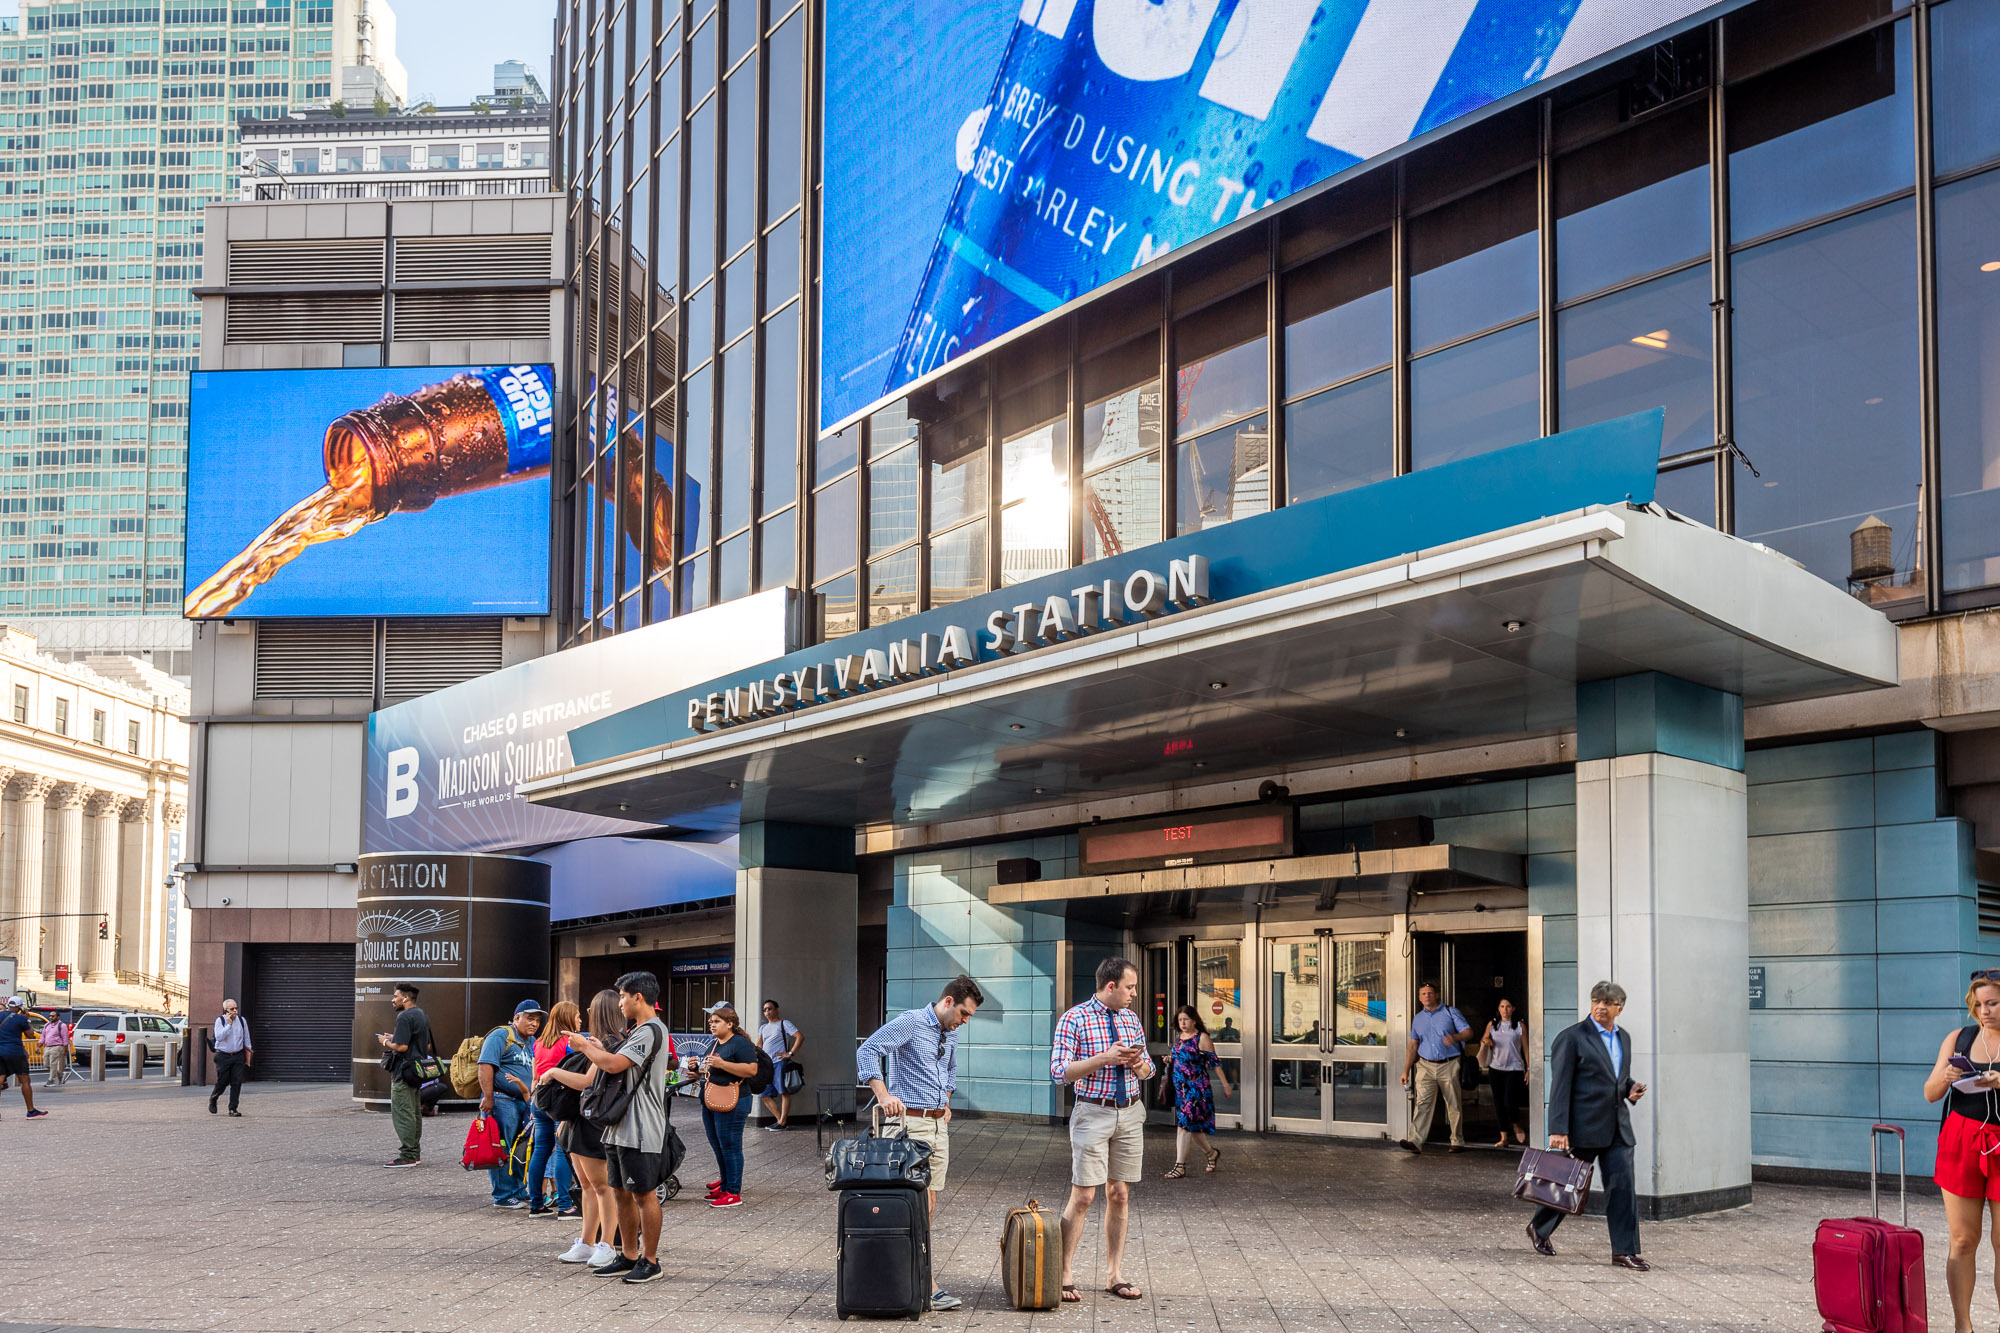 """The exterior of a train station. There is a large sign that says """"Pennsylvania Station"""" over the entrance to the station."""